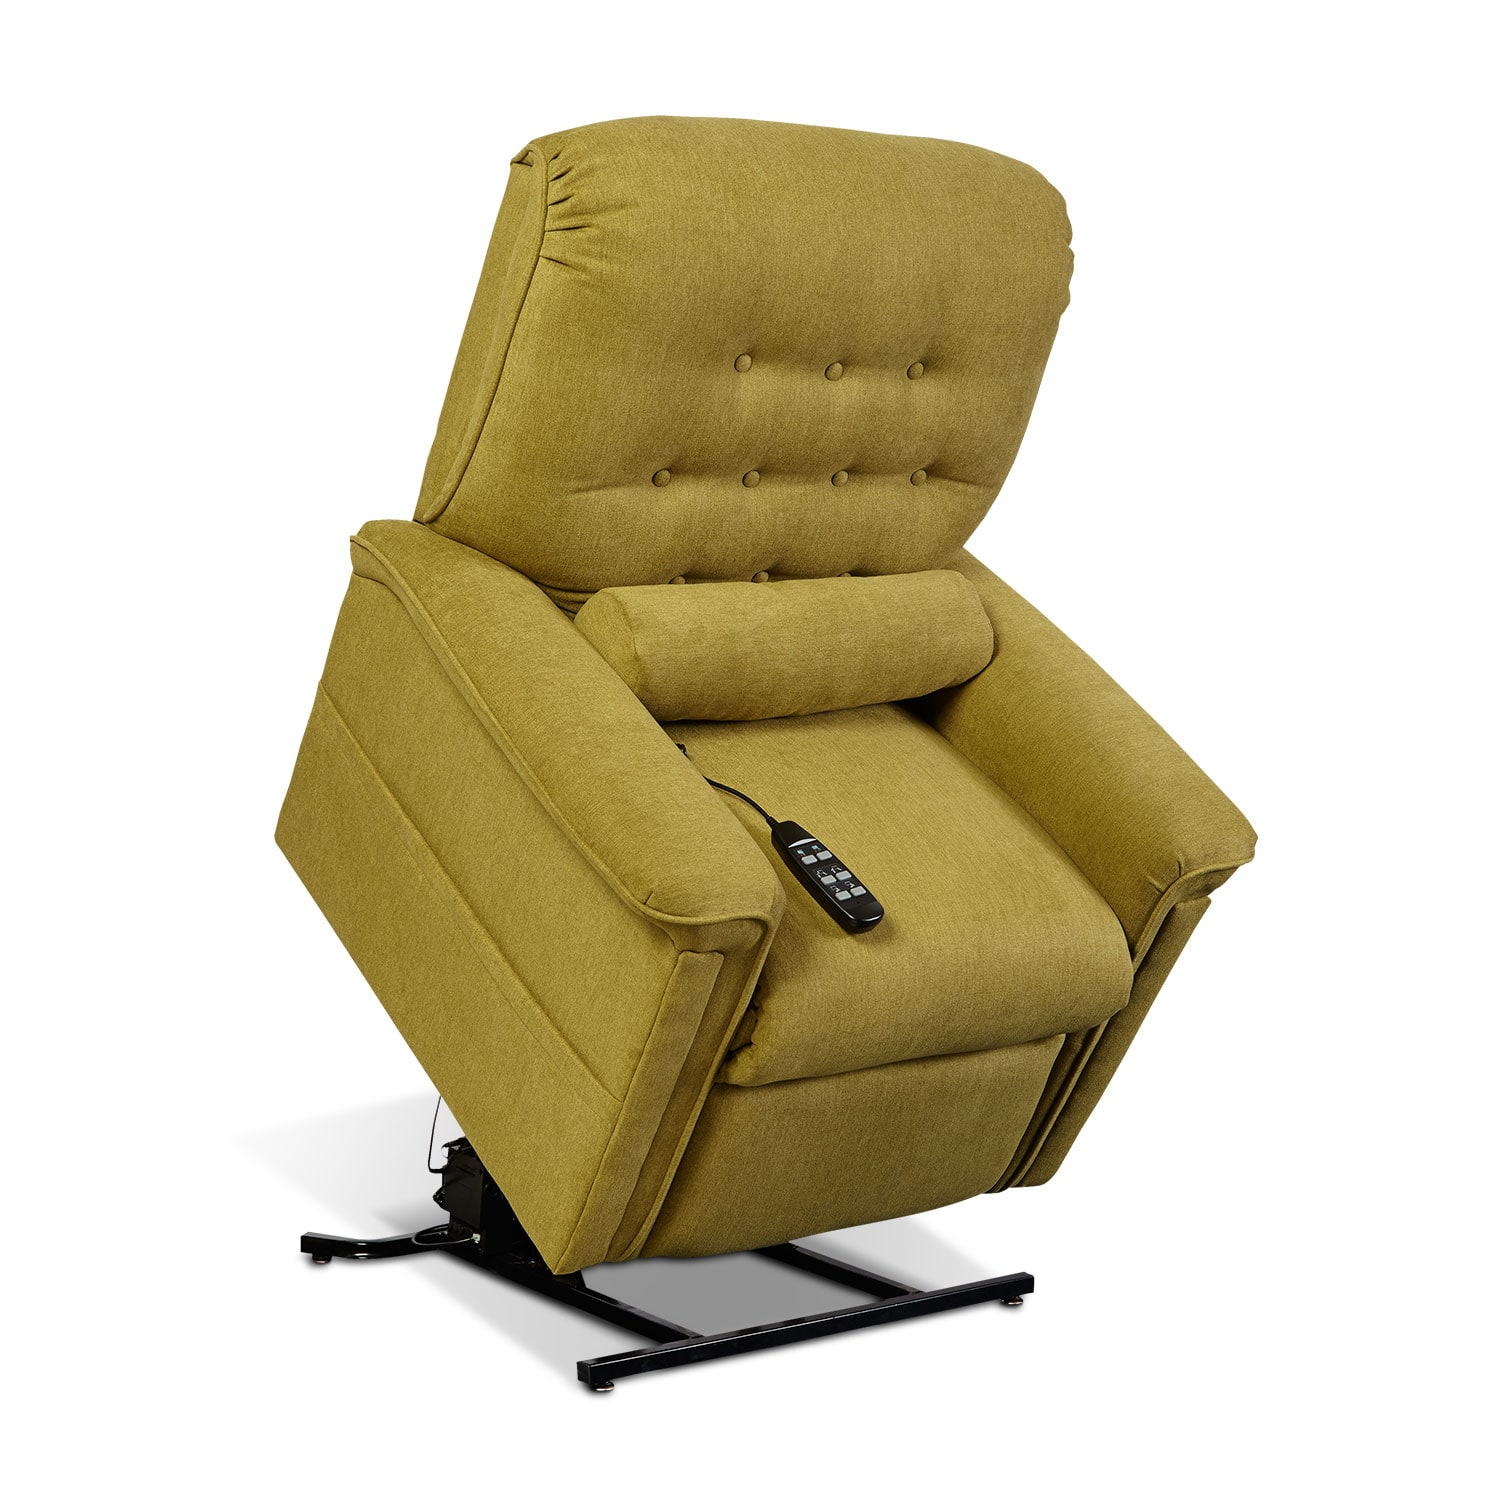 Living Room Furniture - Marcy Lift Chair - Kiwi